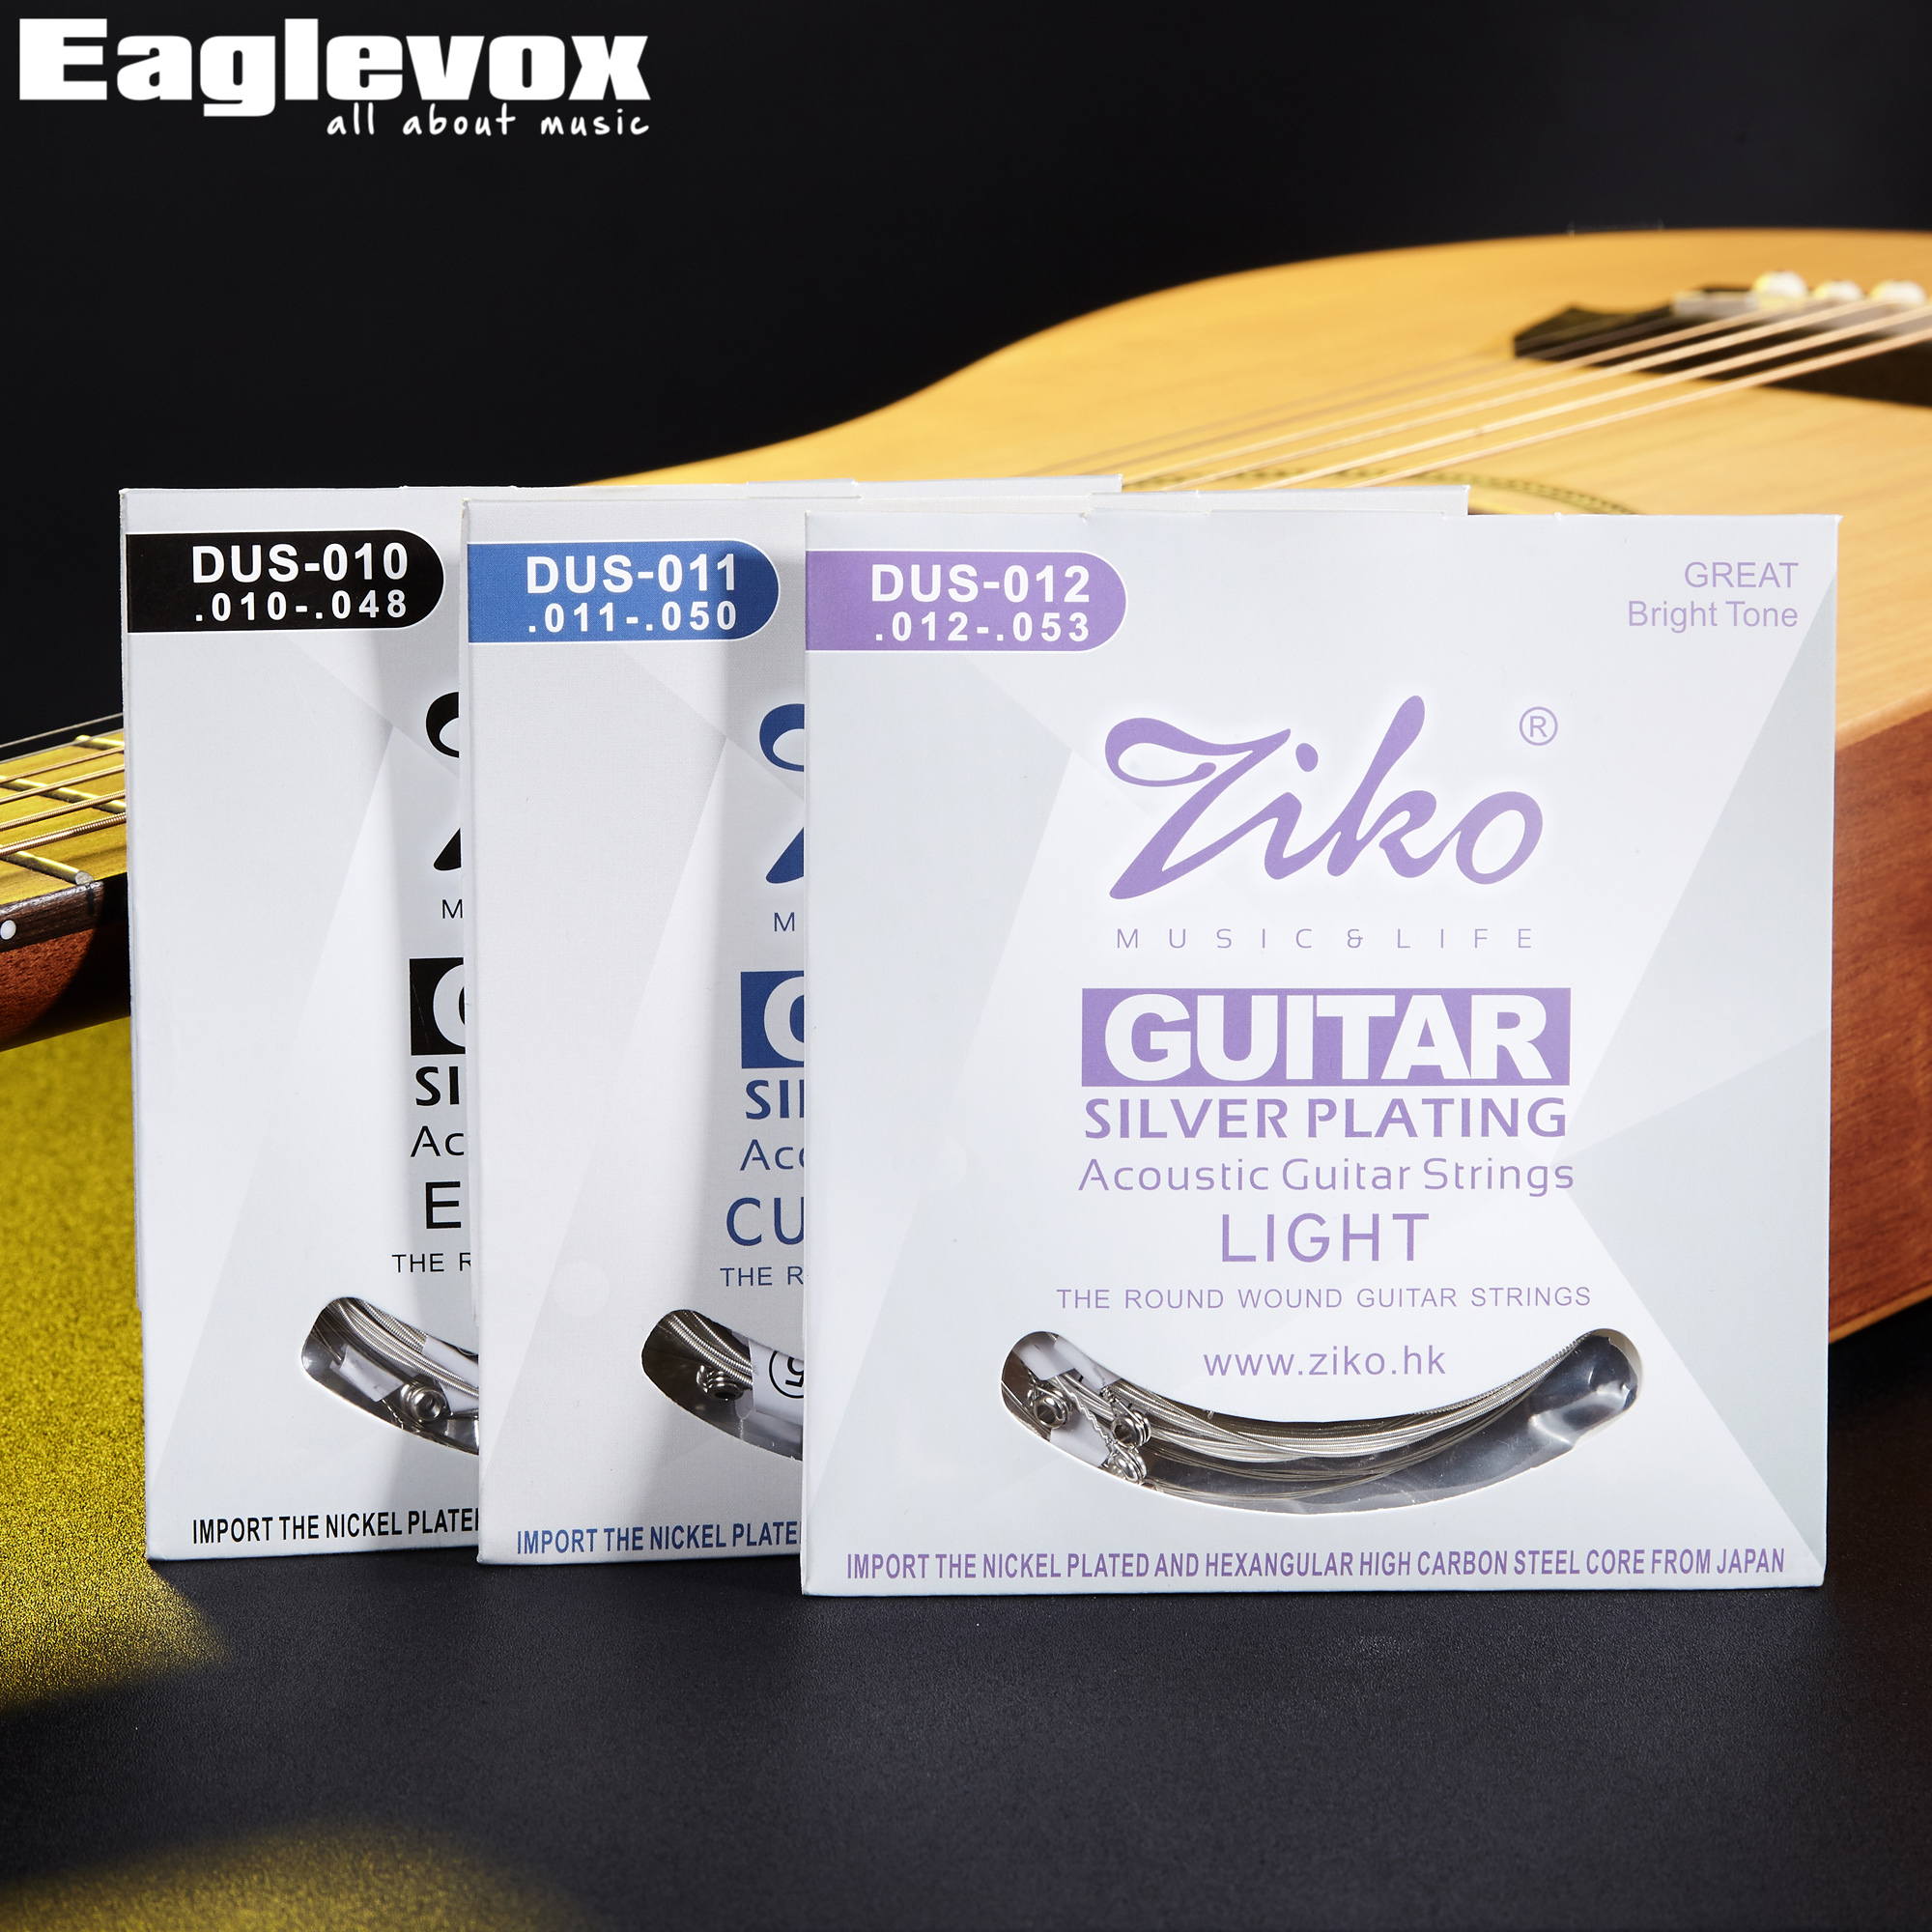 Ziko Acoustic Guitar Strings Hexagon High Carbon Steel Core Silver Planting Material Import from Japen 010 011 012 DUS ziko acoustic guitar strings set 010 011 012 silver plating acoustic wound guitar strings parts musical instruments 6pcs set